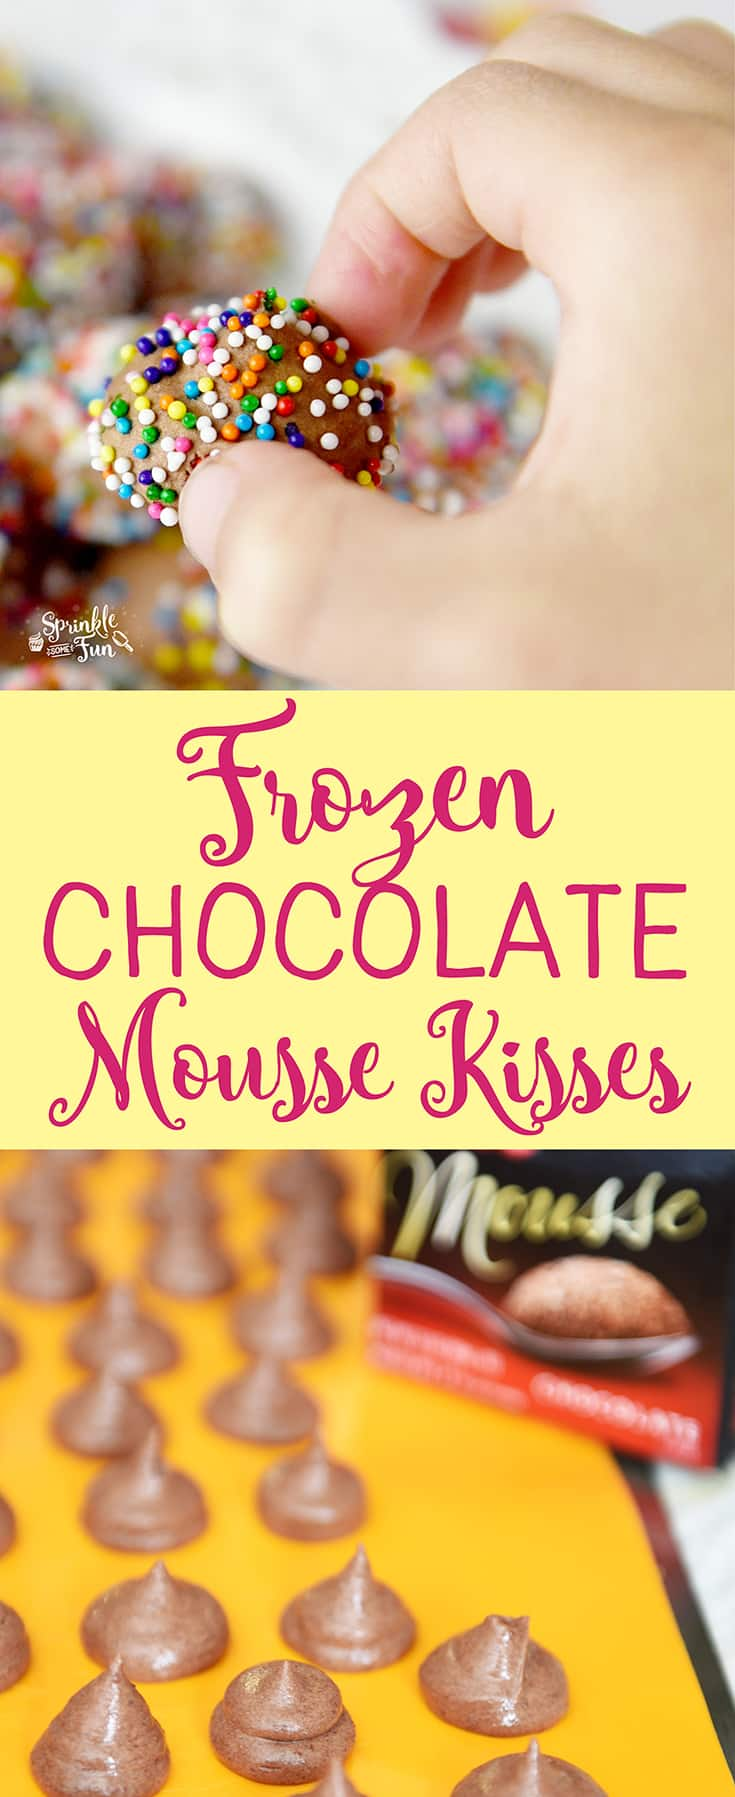 Frozen Chocolate Mousse Kisses are great to snack on.  These bite sized frozen treats are so creamy, chocolatey and sweet!